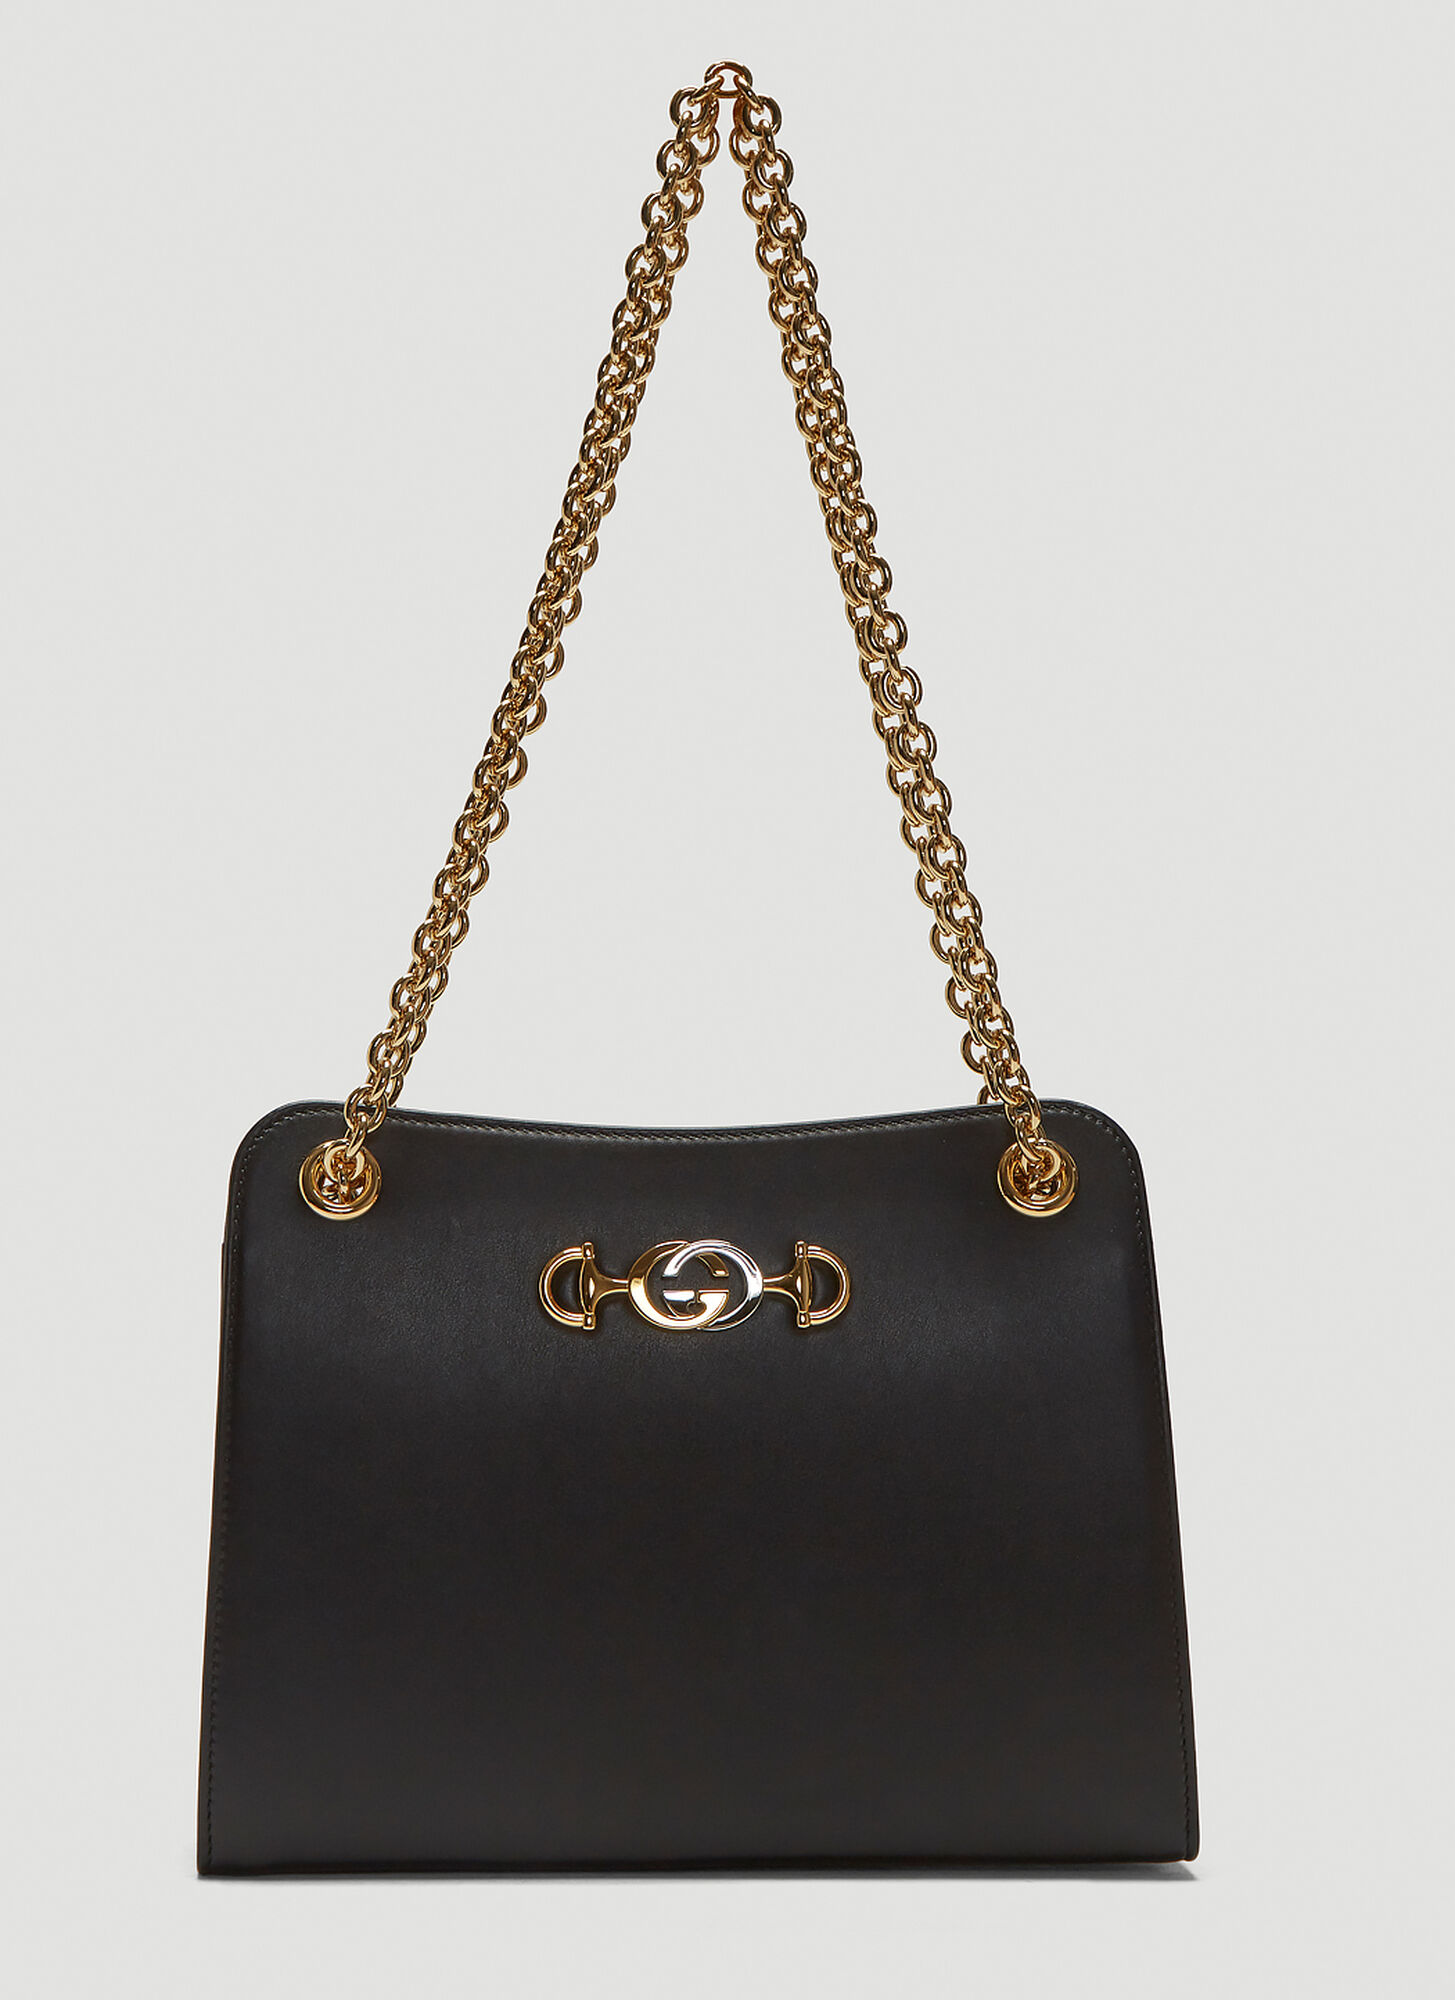 Gucci Zumi Leather Shoulder Bag in Black